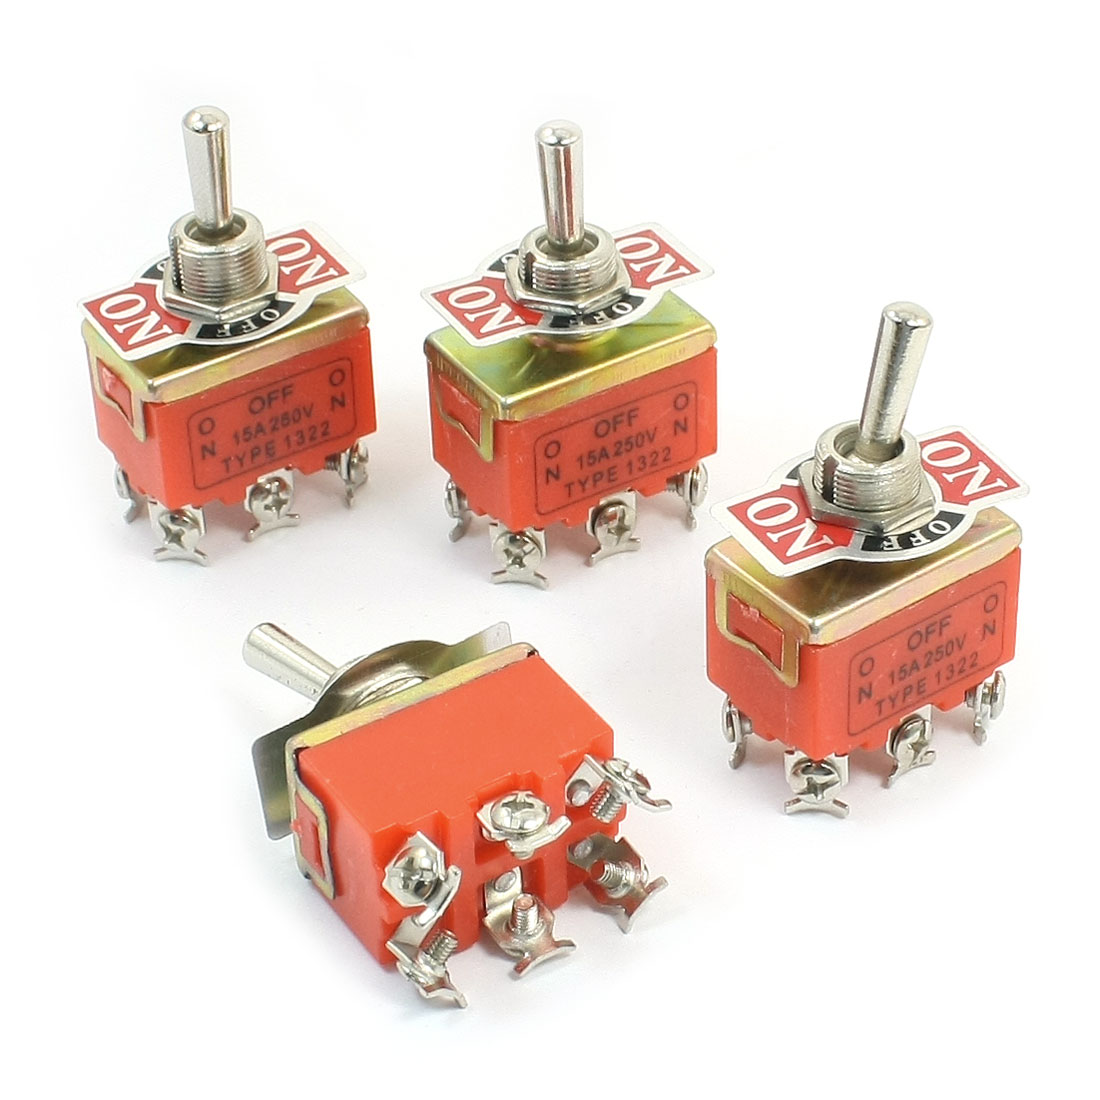 AC 250V 15A 2PDT ON-OFF-ON 3 Positions Latching Toggle Switch E-TEN1322 4pcs